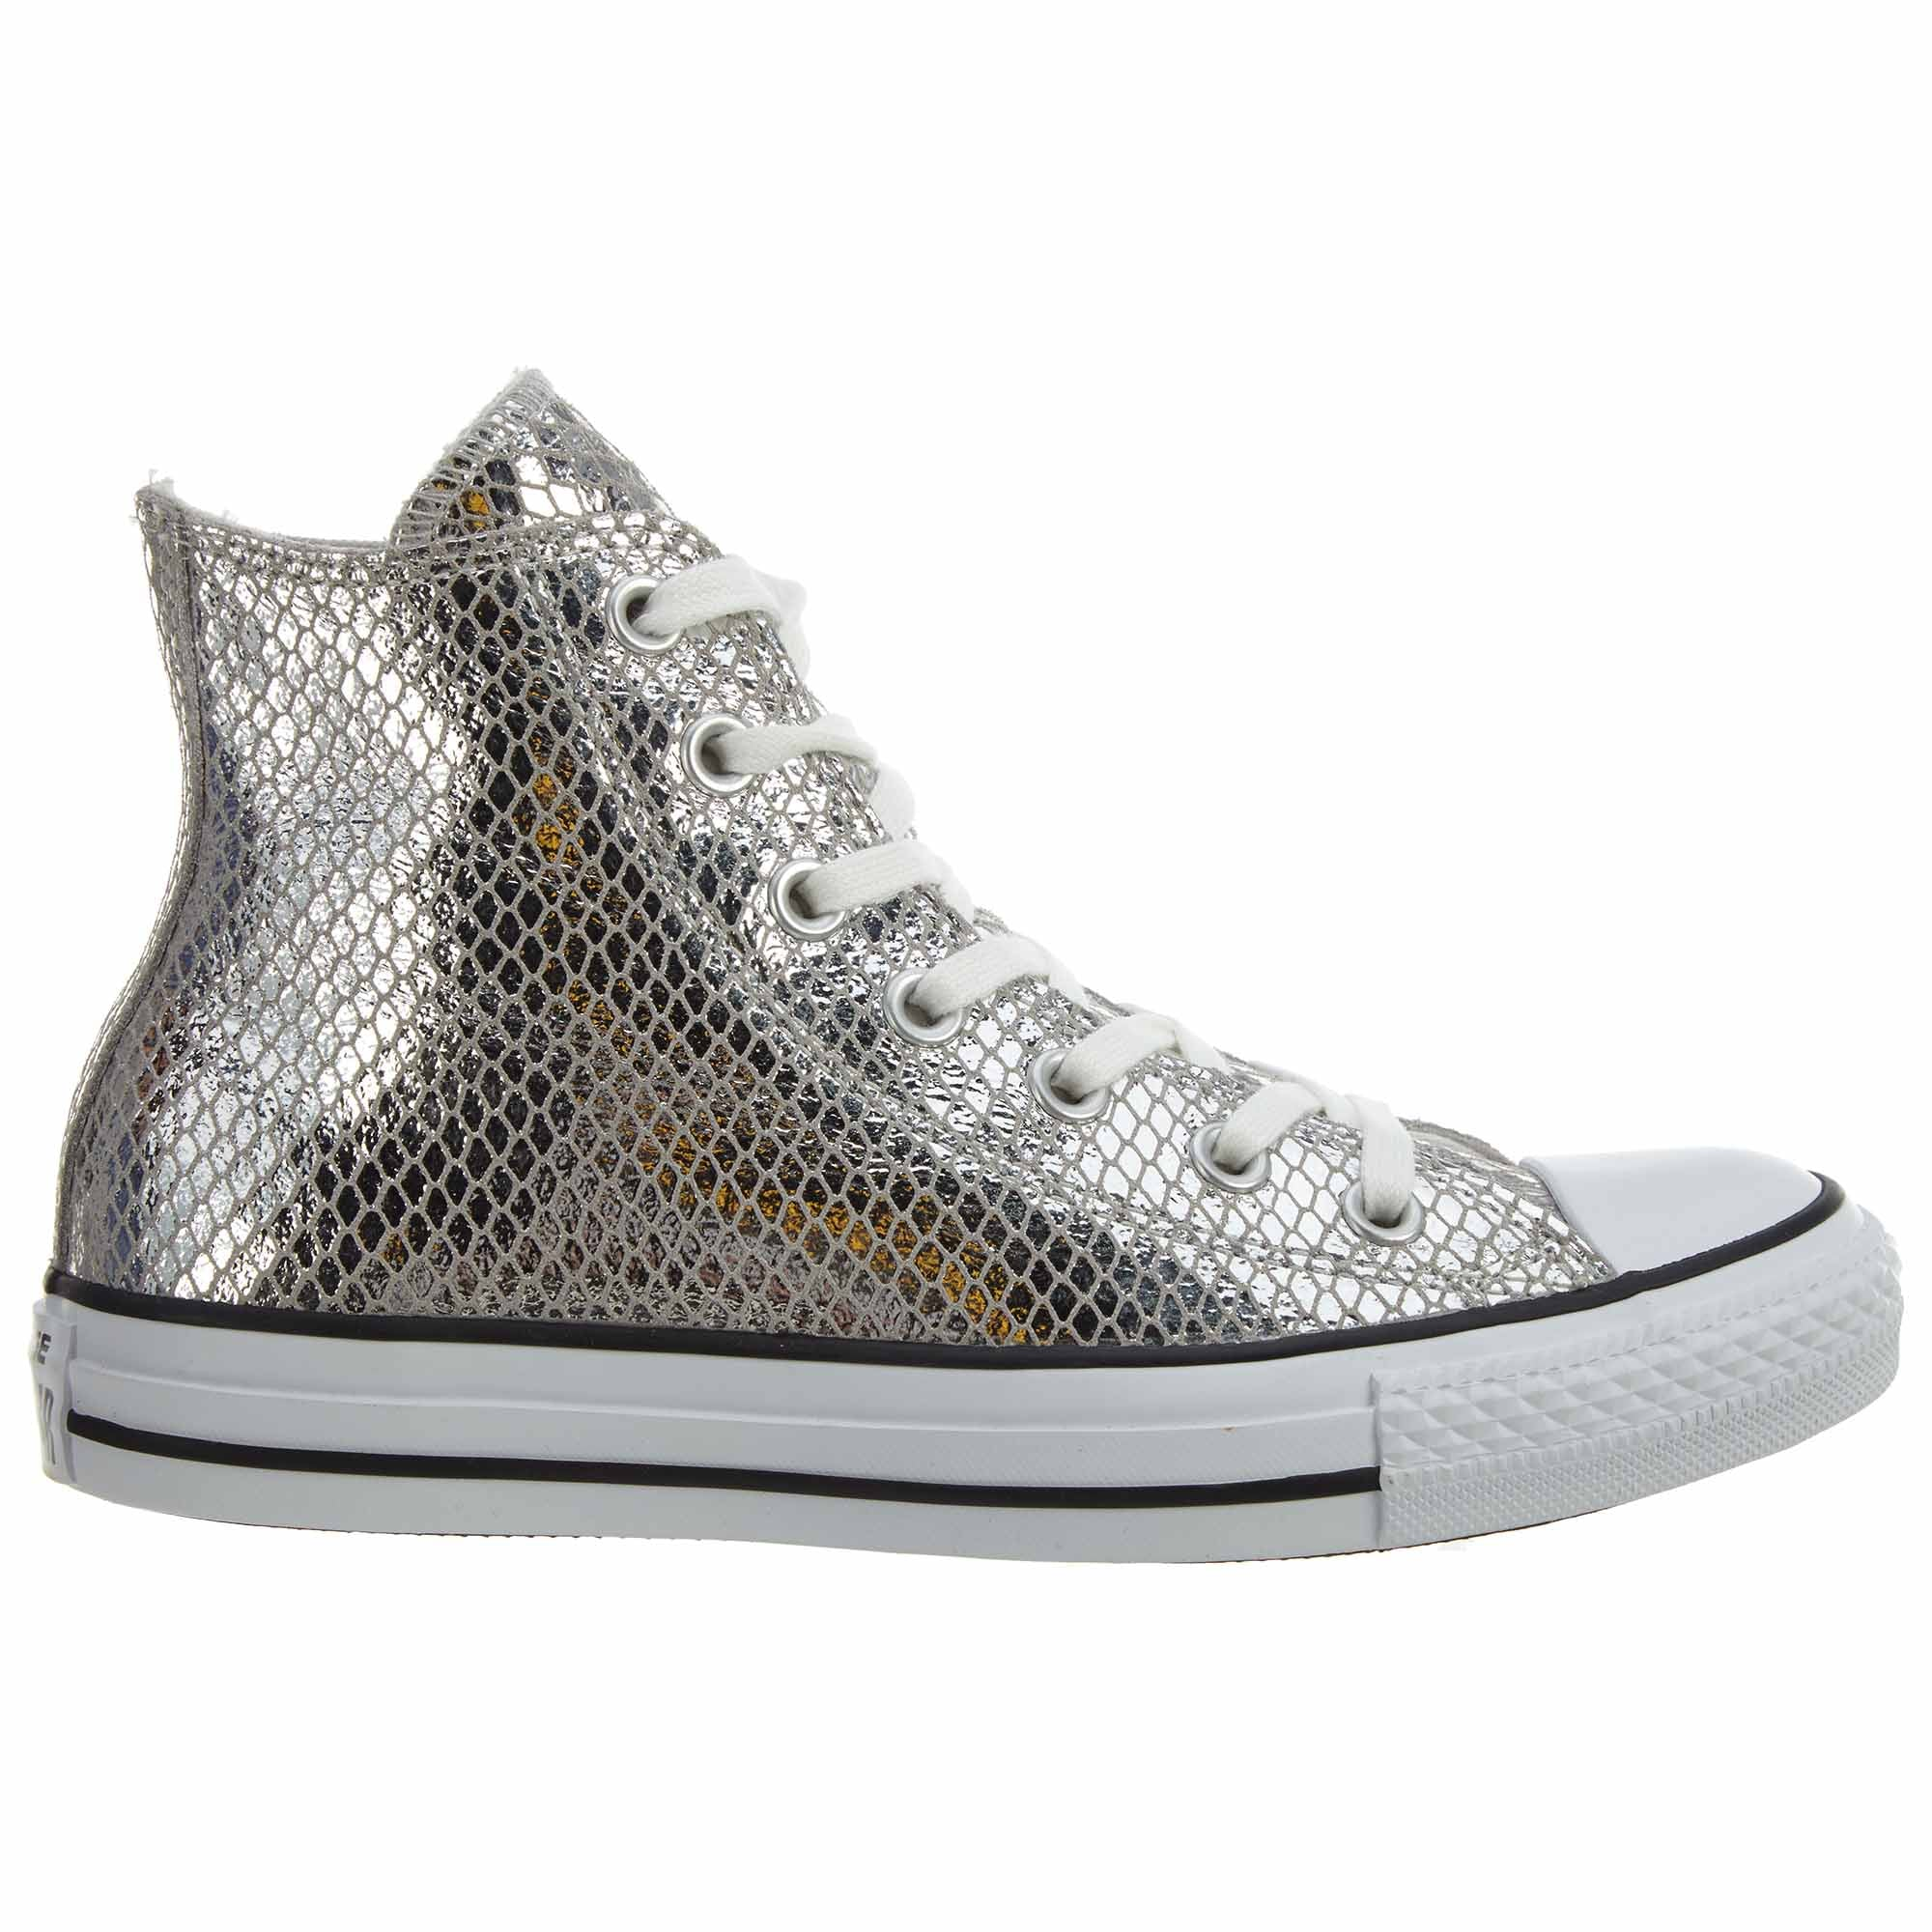 7bbe68342567 Converse Chuck Taylor All Star Hi Womens Style   555965c